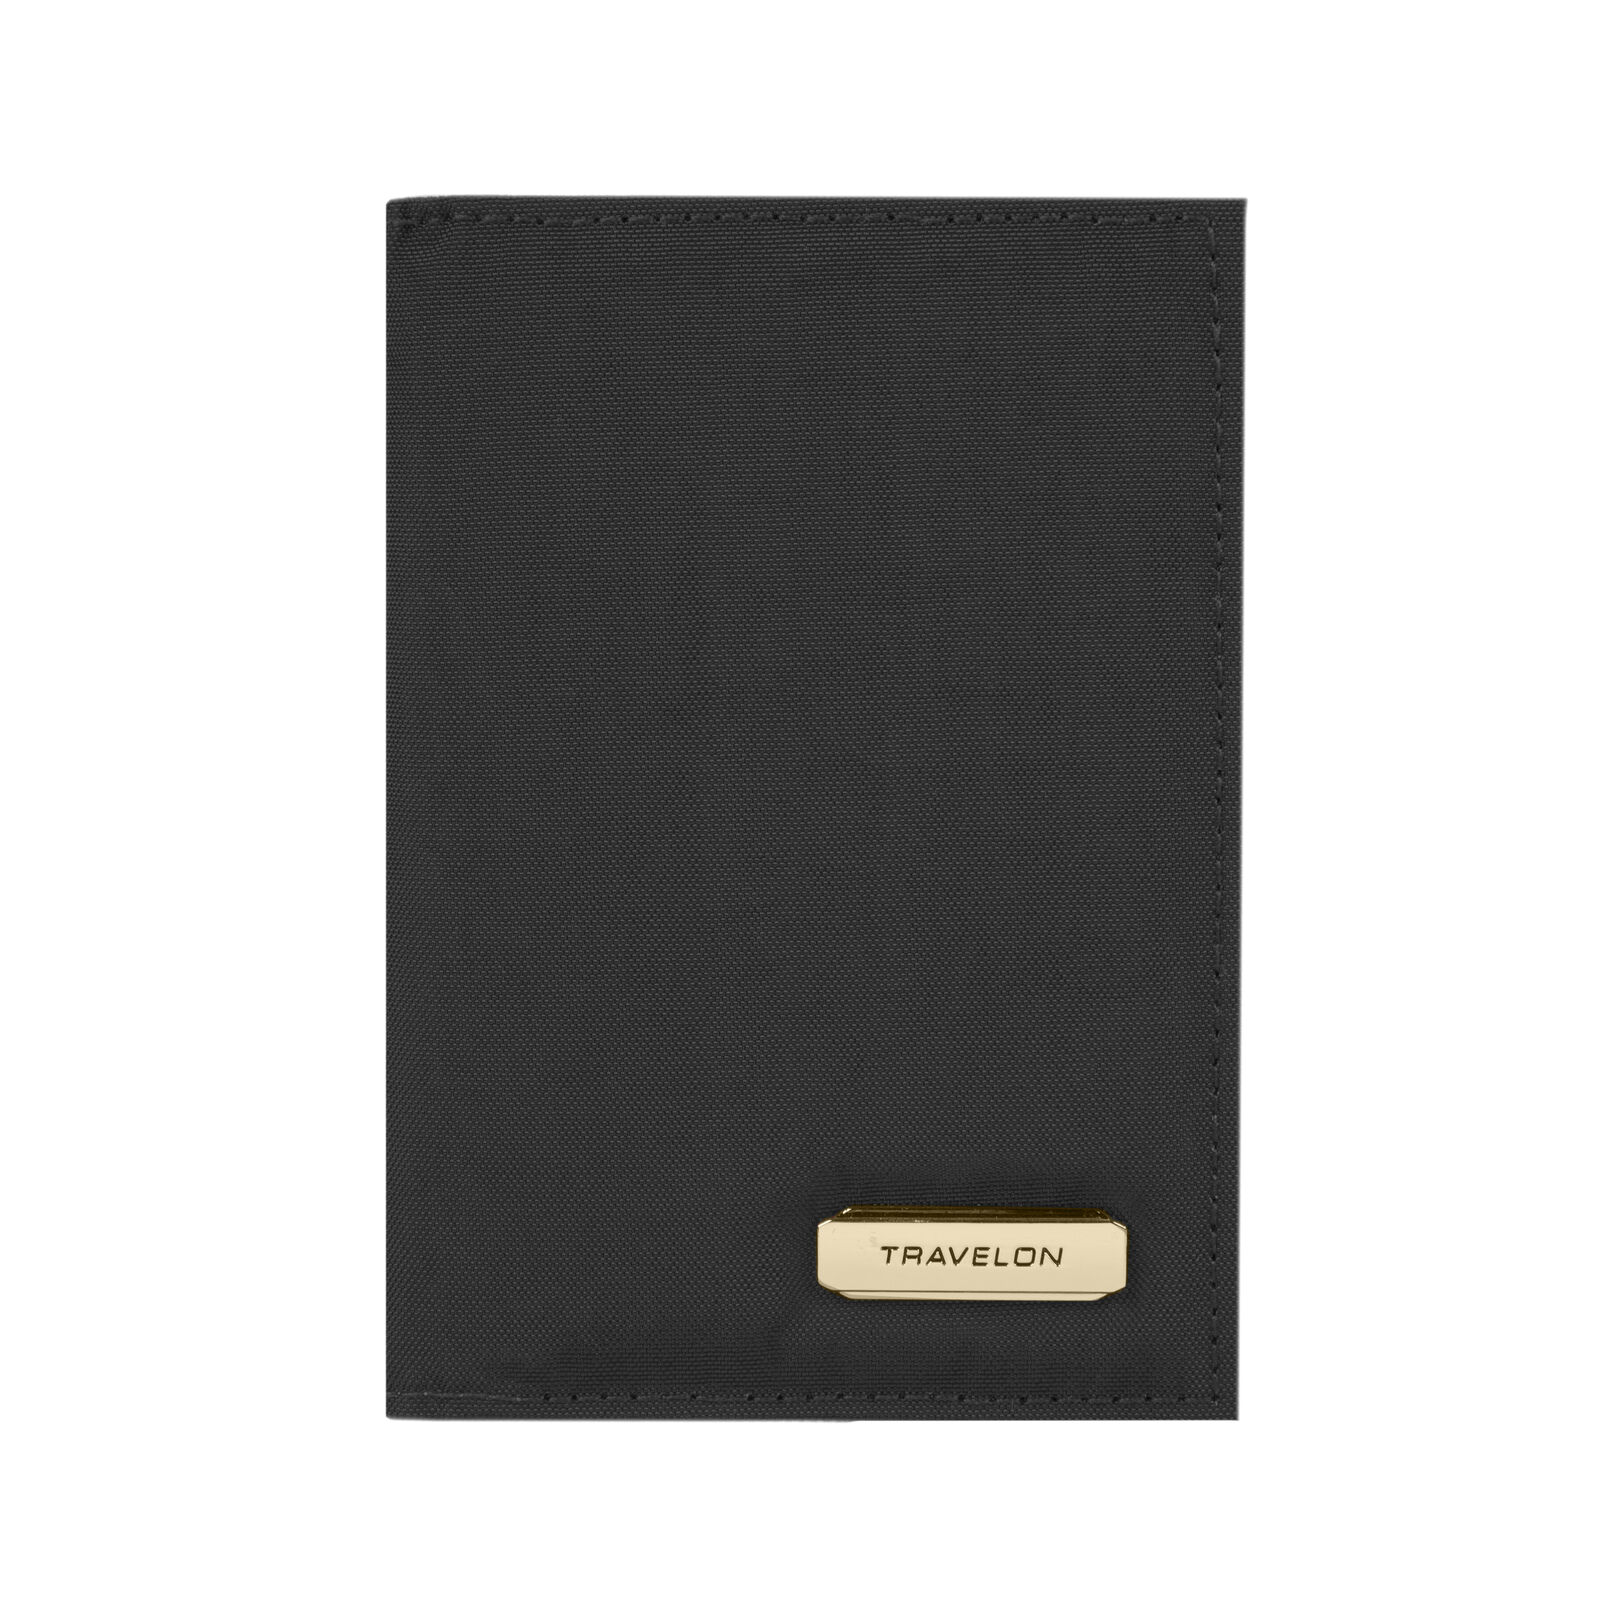 Travelon Bifold Passport Holder - s l1600